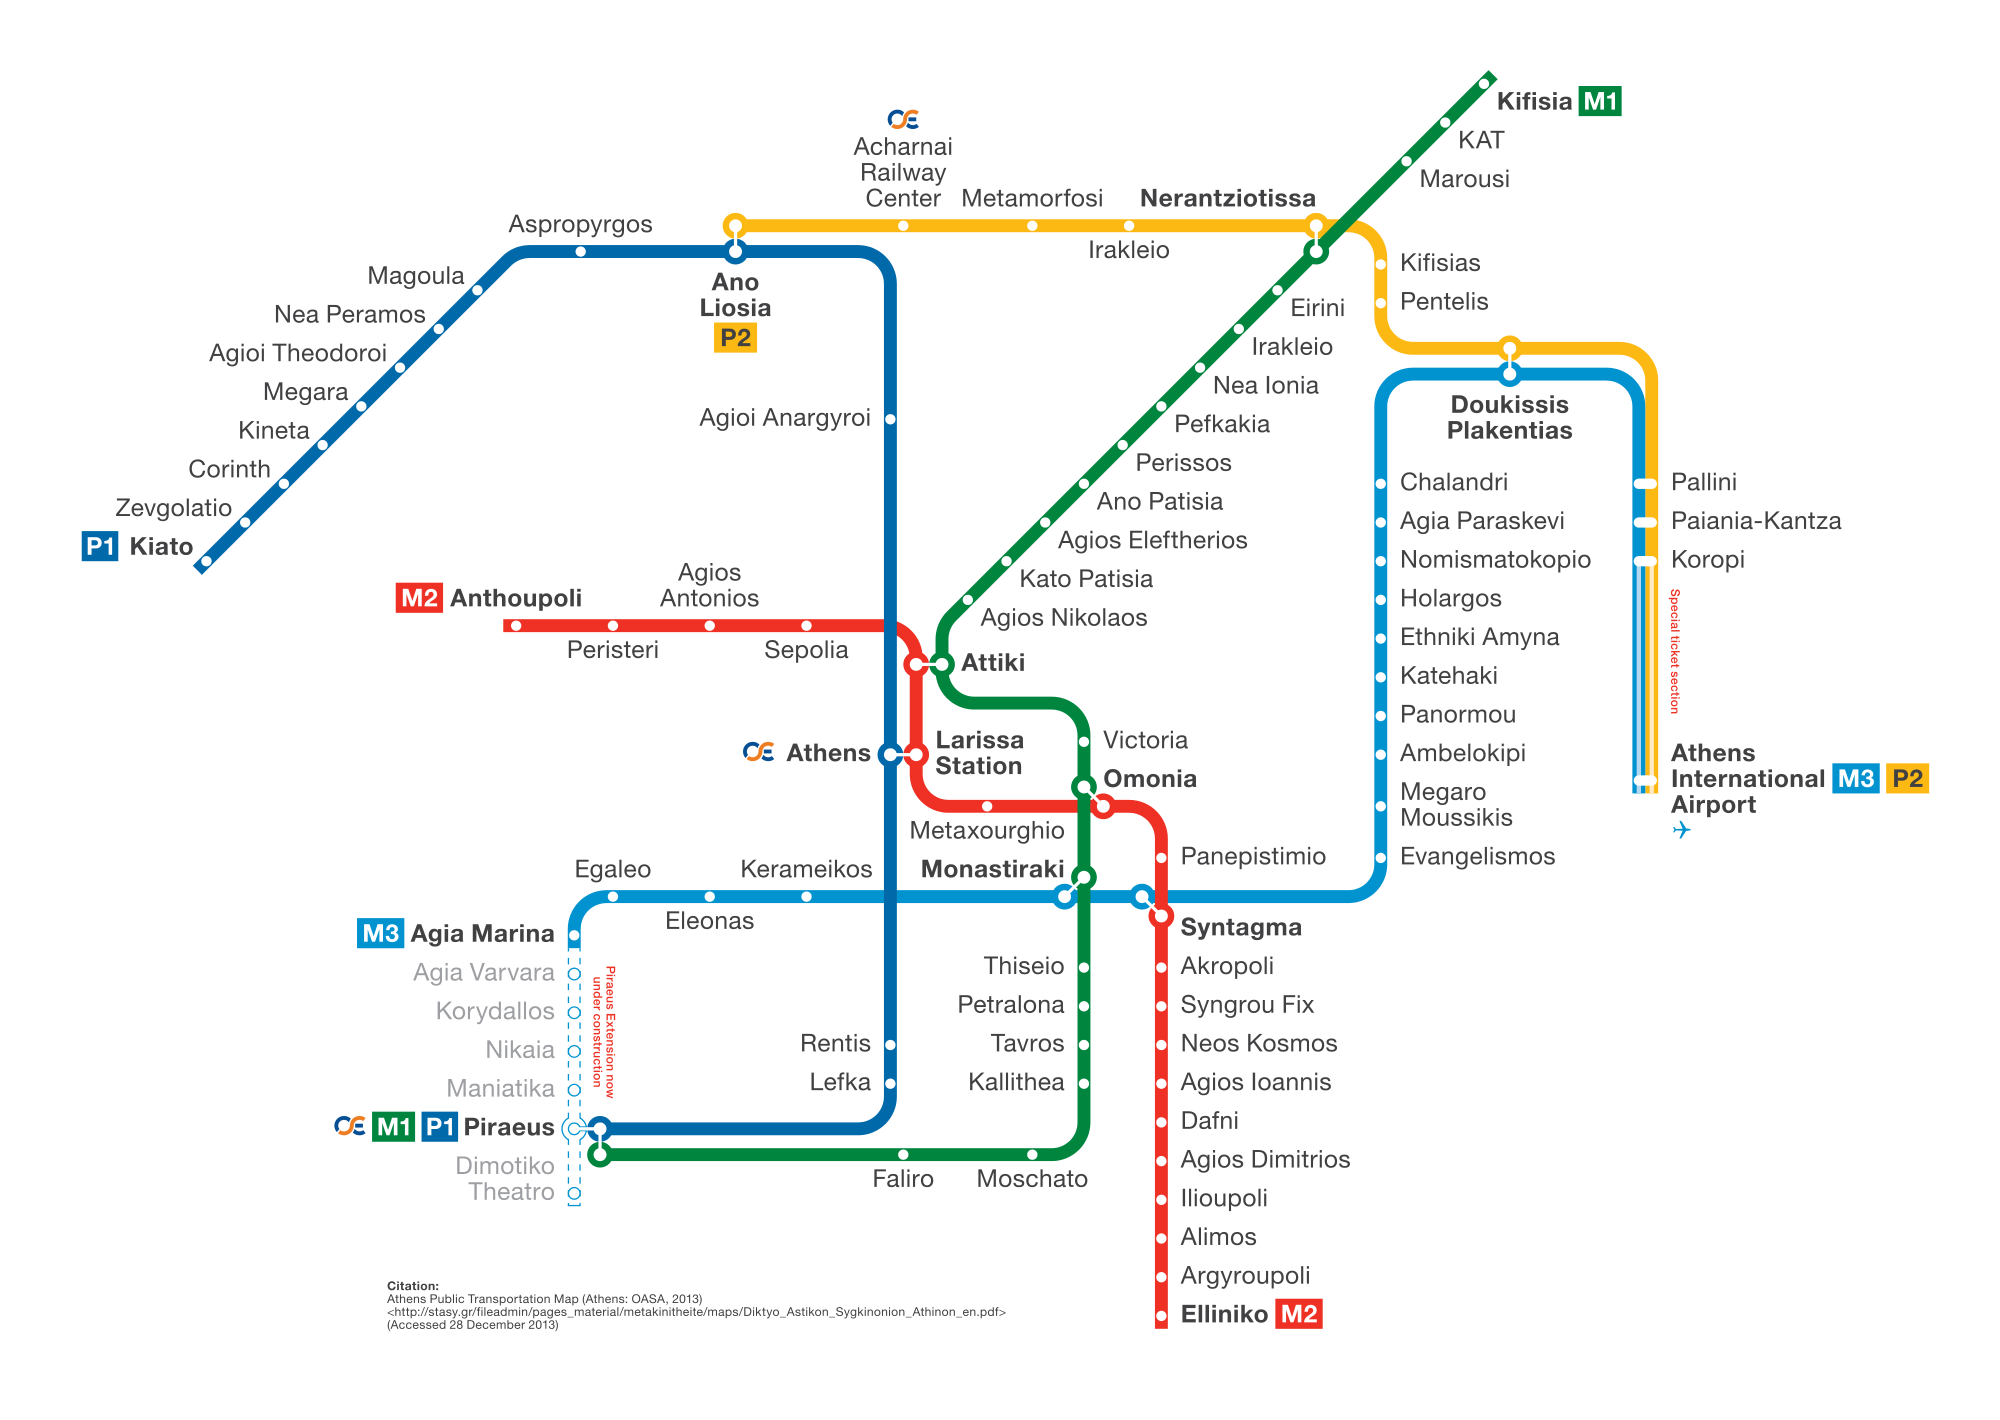 An Athens Metro map - Useful when taking the Athens metro